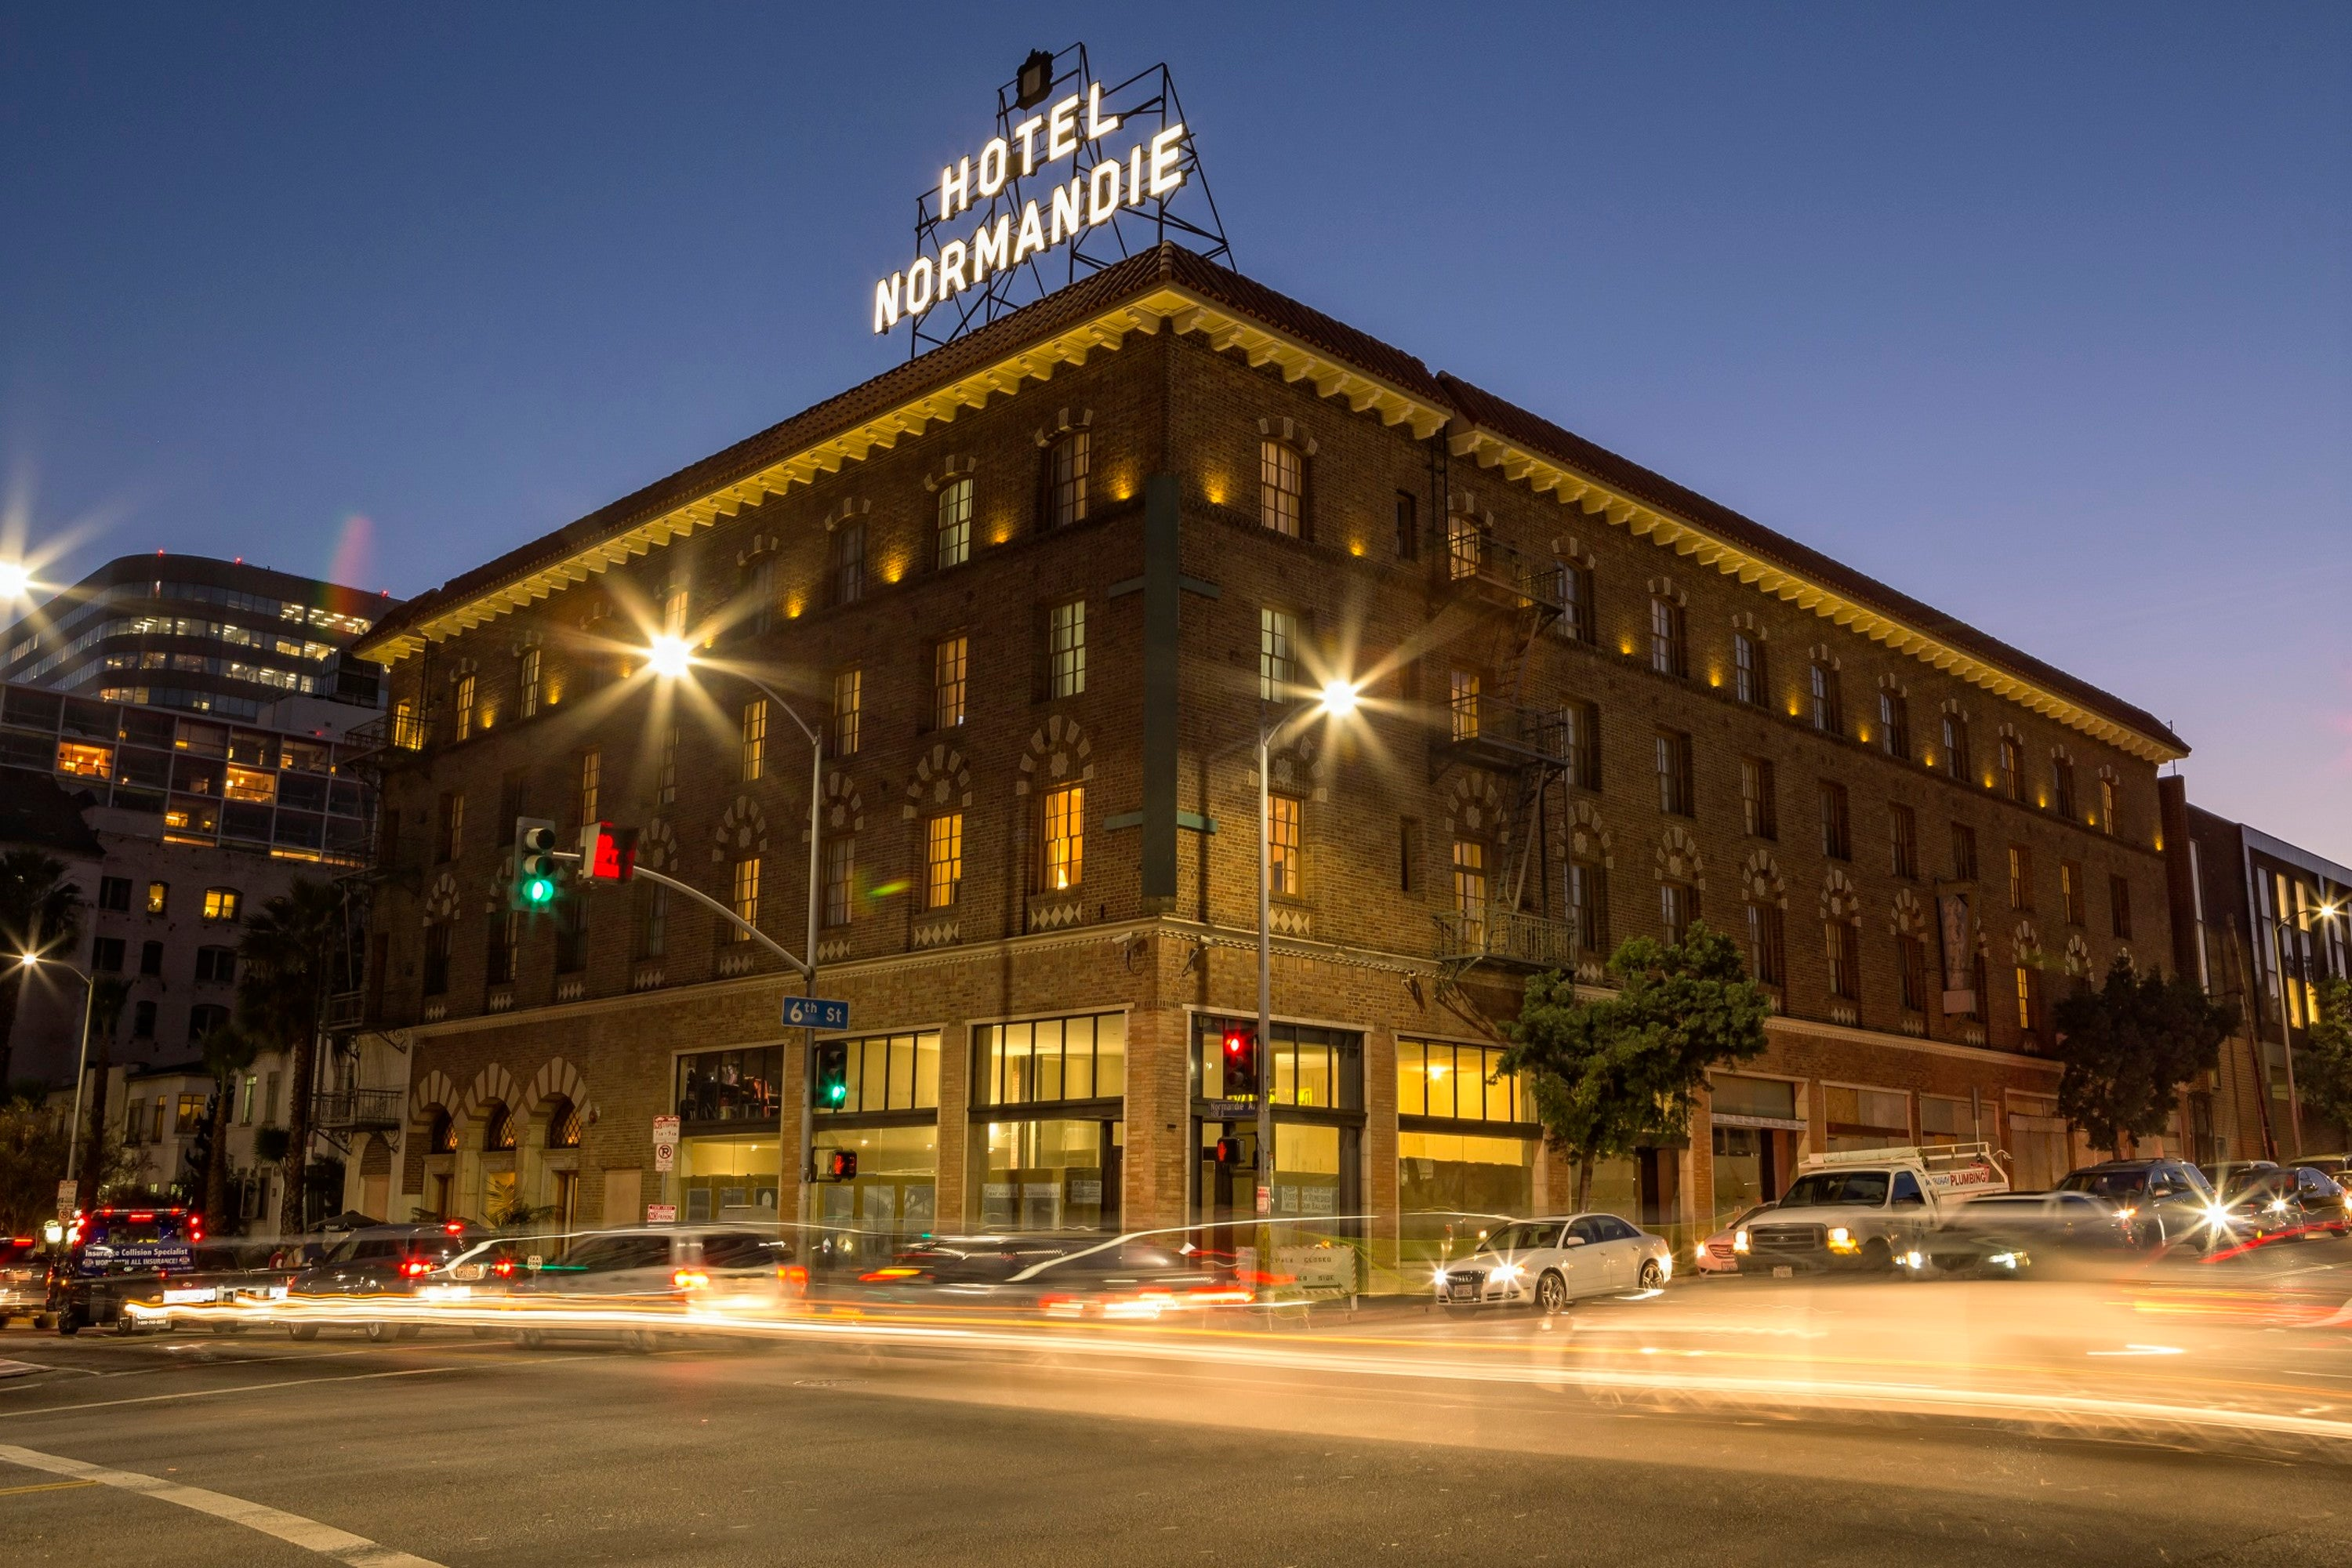 Hotel Normandie LA | Discover Los Angeles